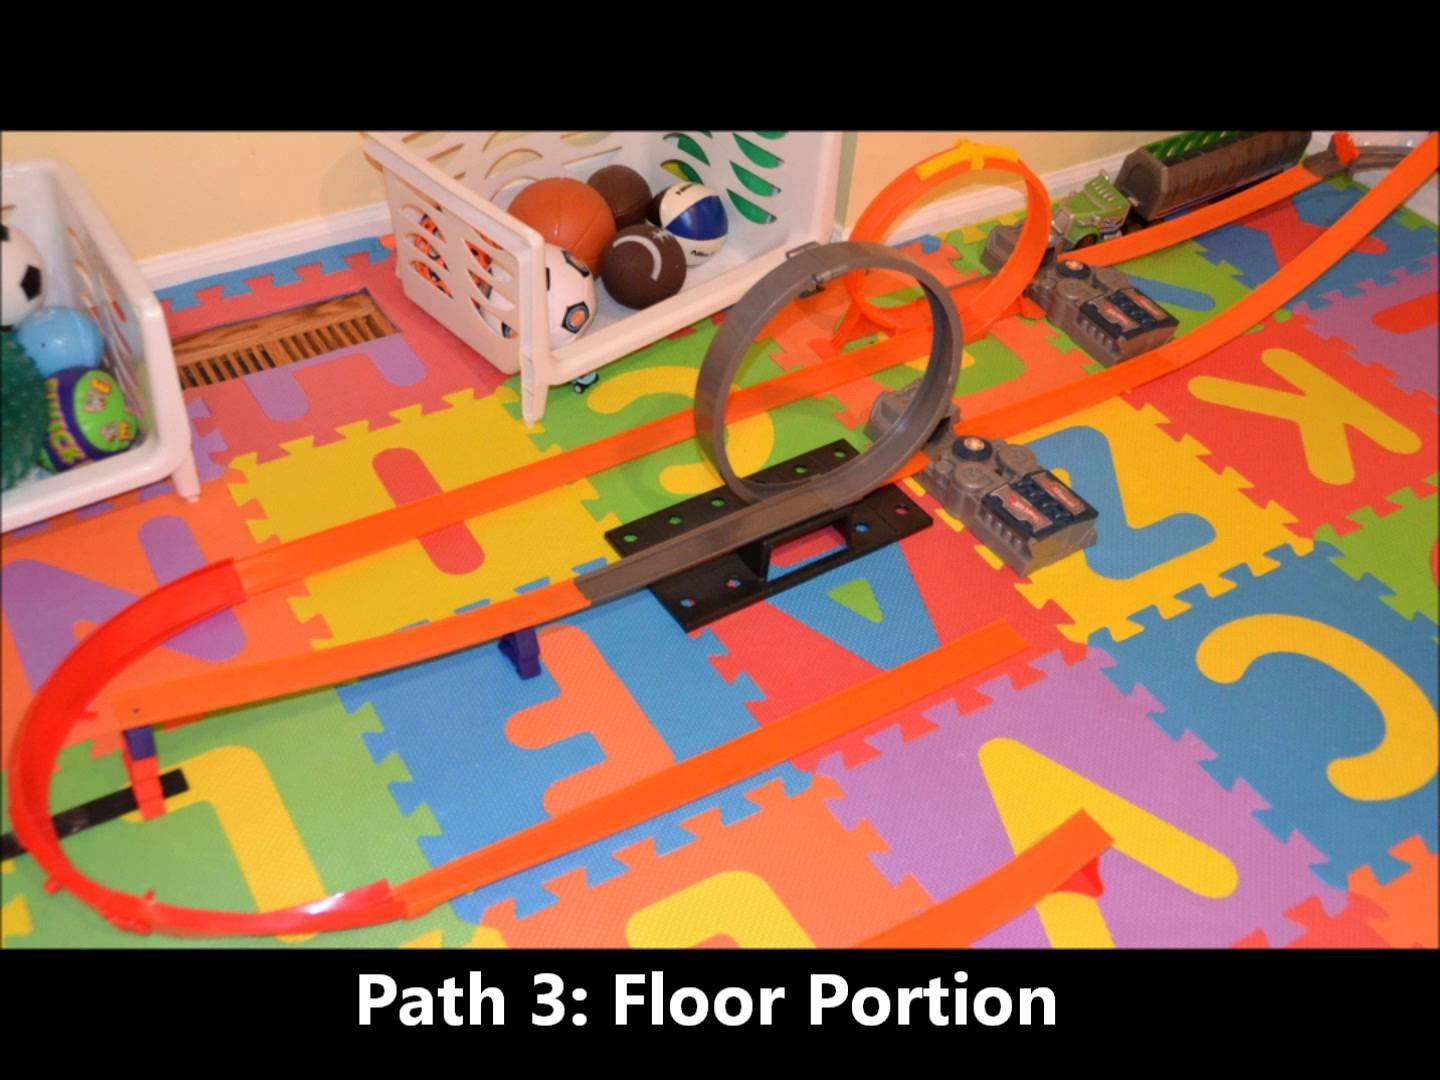 New Ultimate Hot Wheels Wall Tracks With Power Tower And Mid Air Regarding Hot Wheels Wall Art (View 16 of 20)